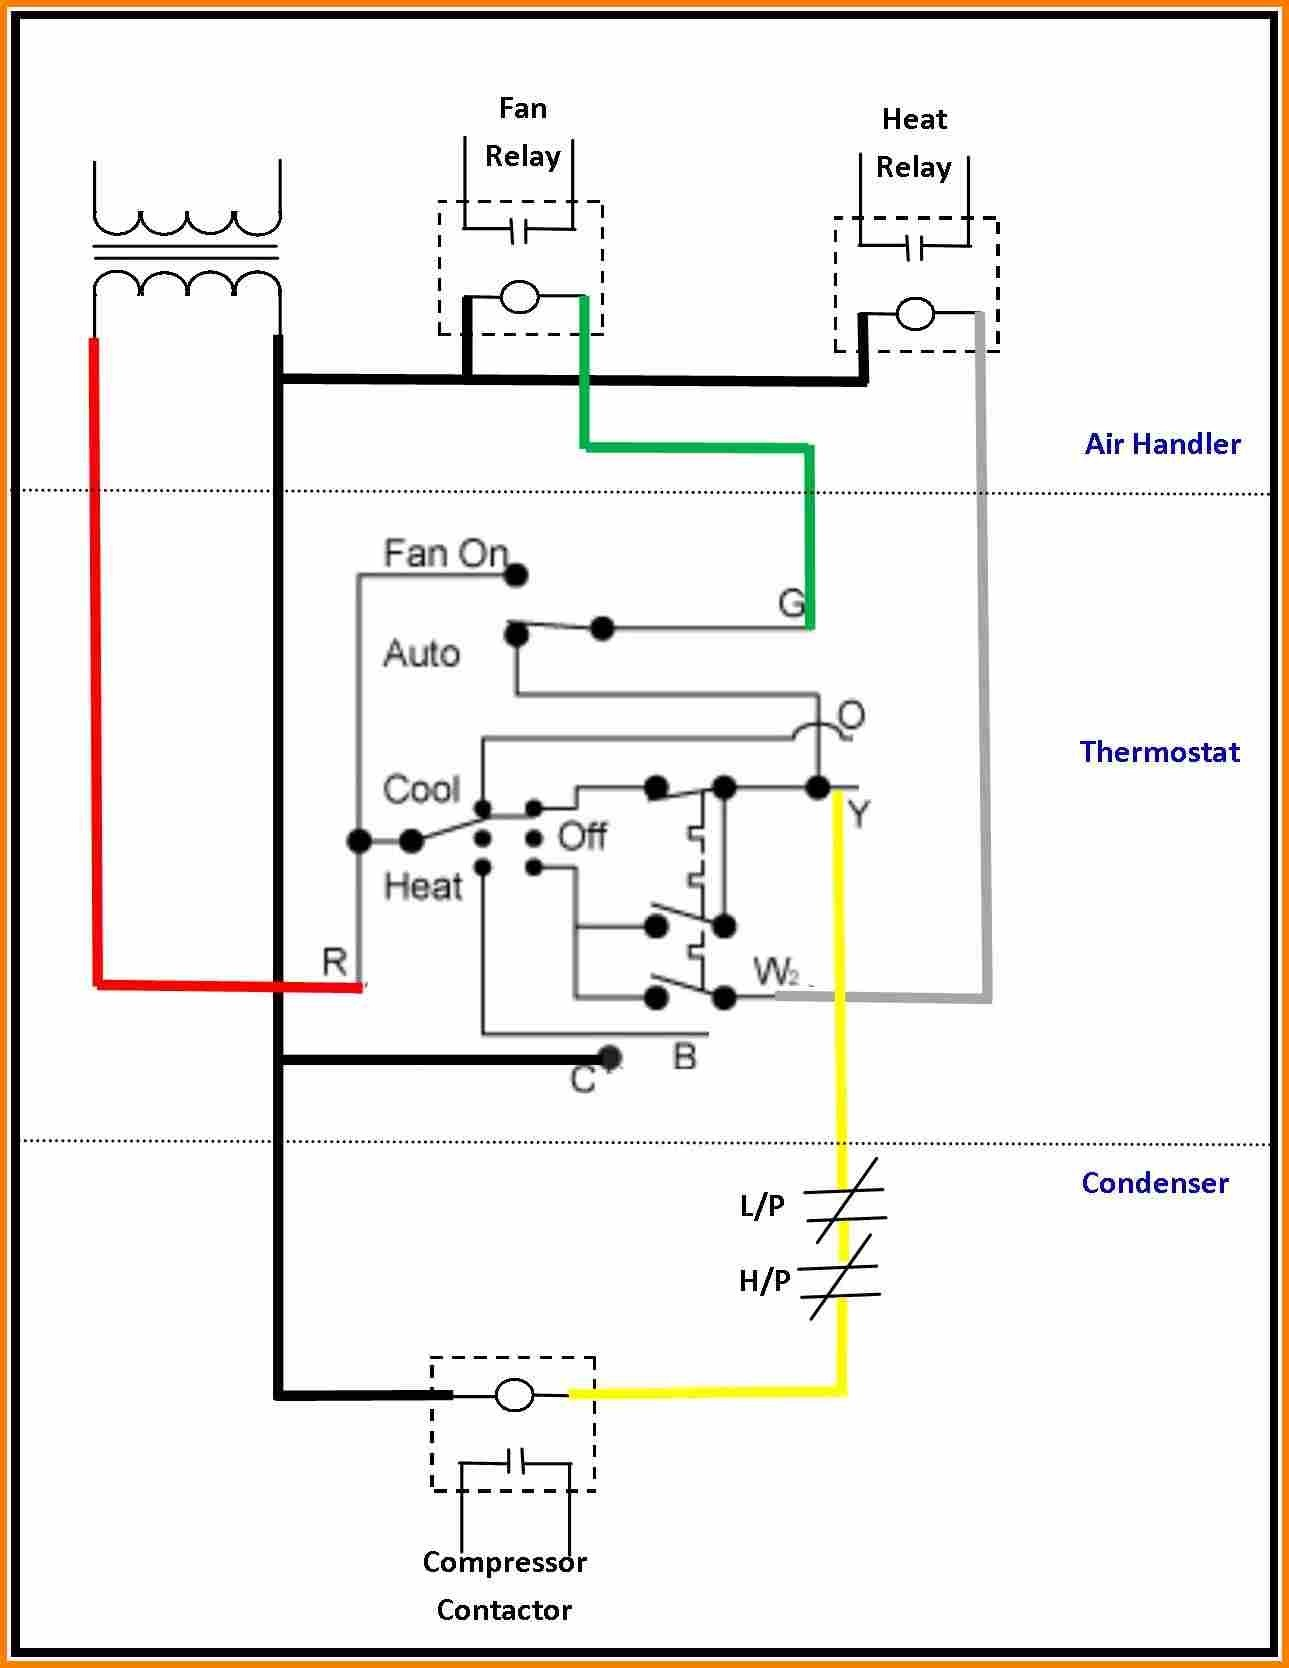 Heating and Cooling thermostat Wiring Diagram thermostat Wiring Diagram Wiring Diagrams